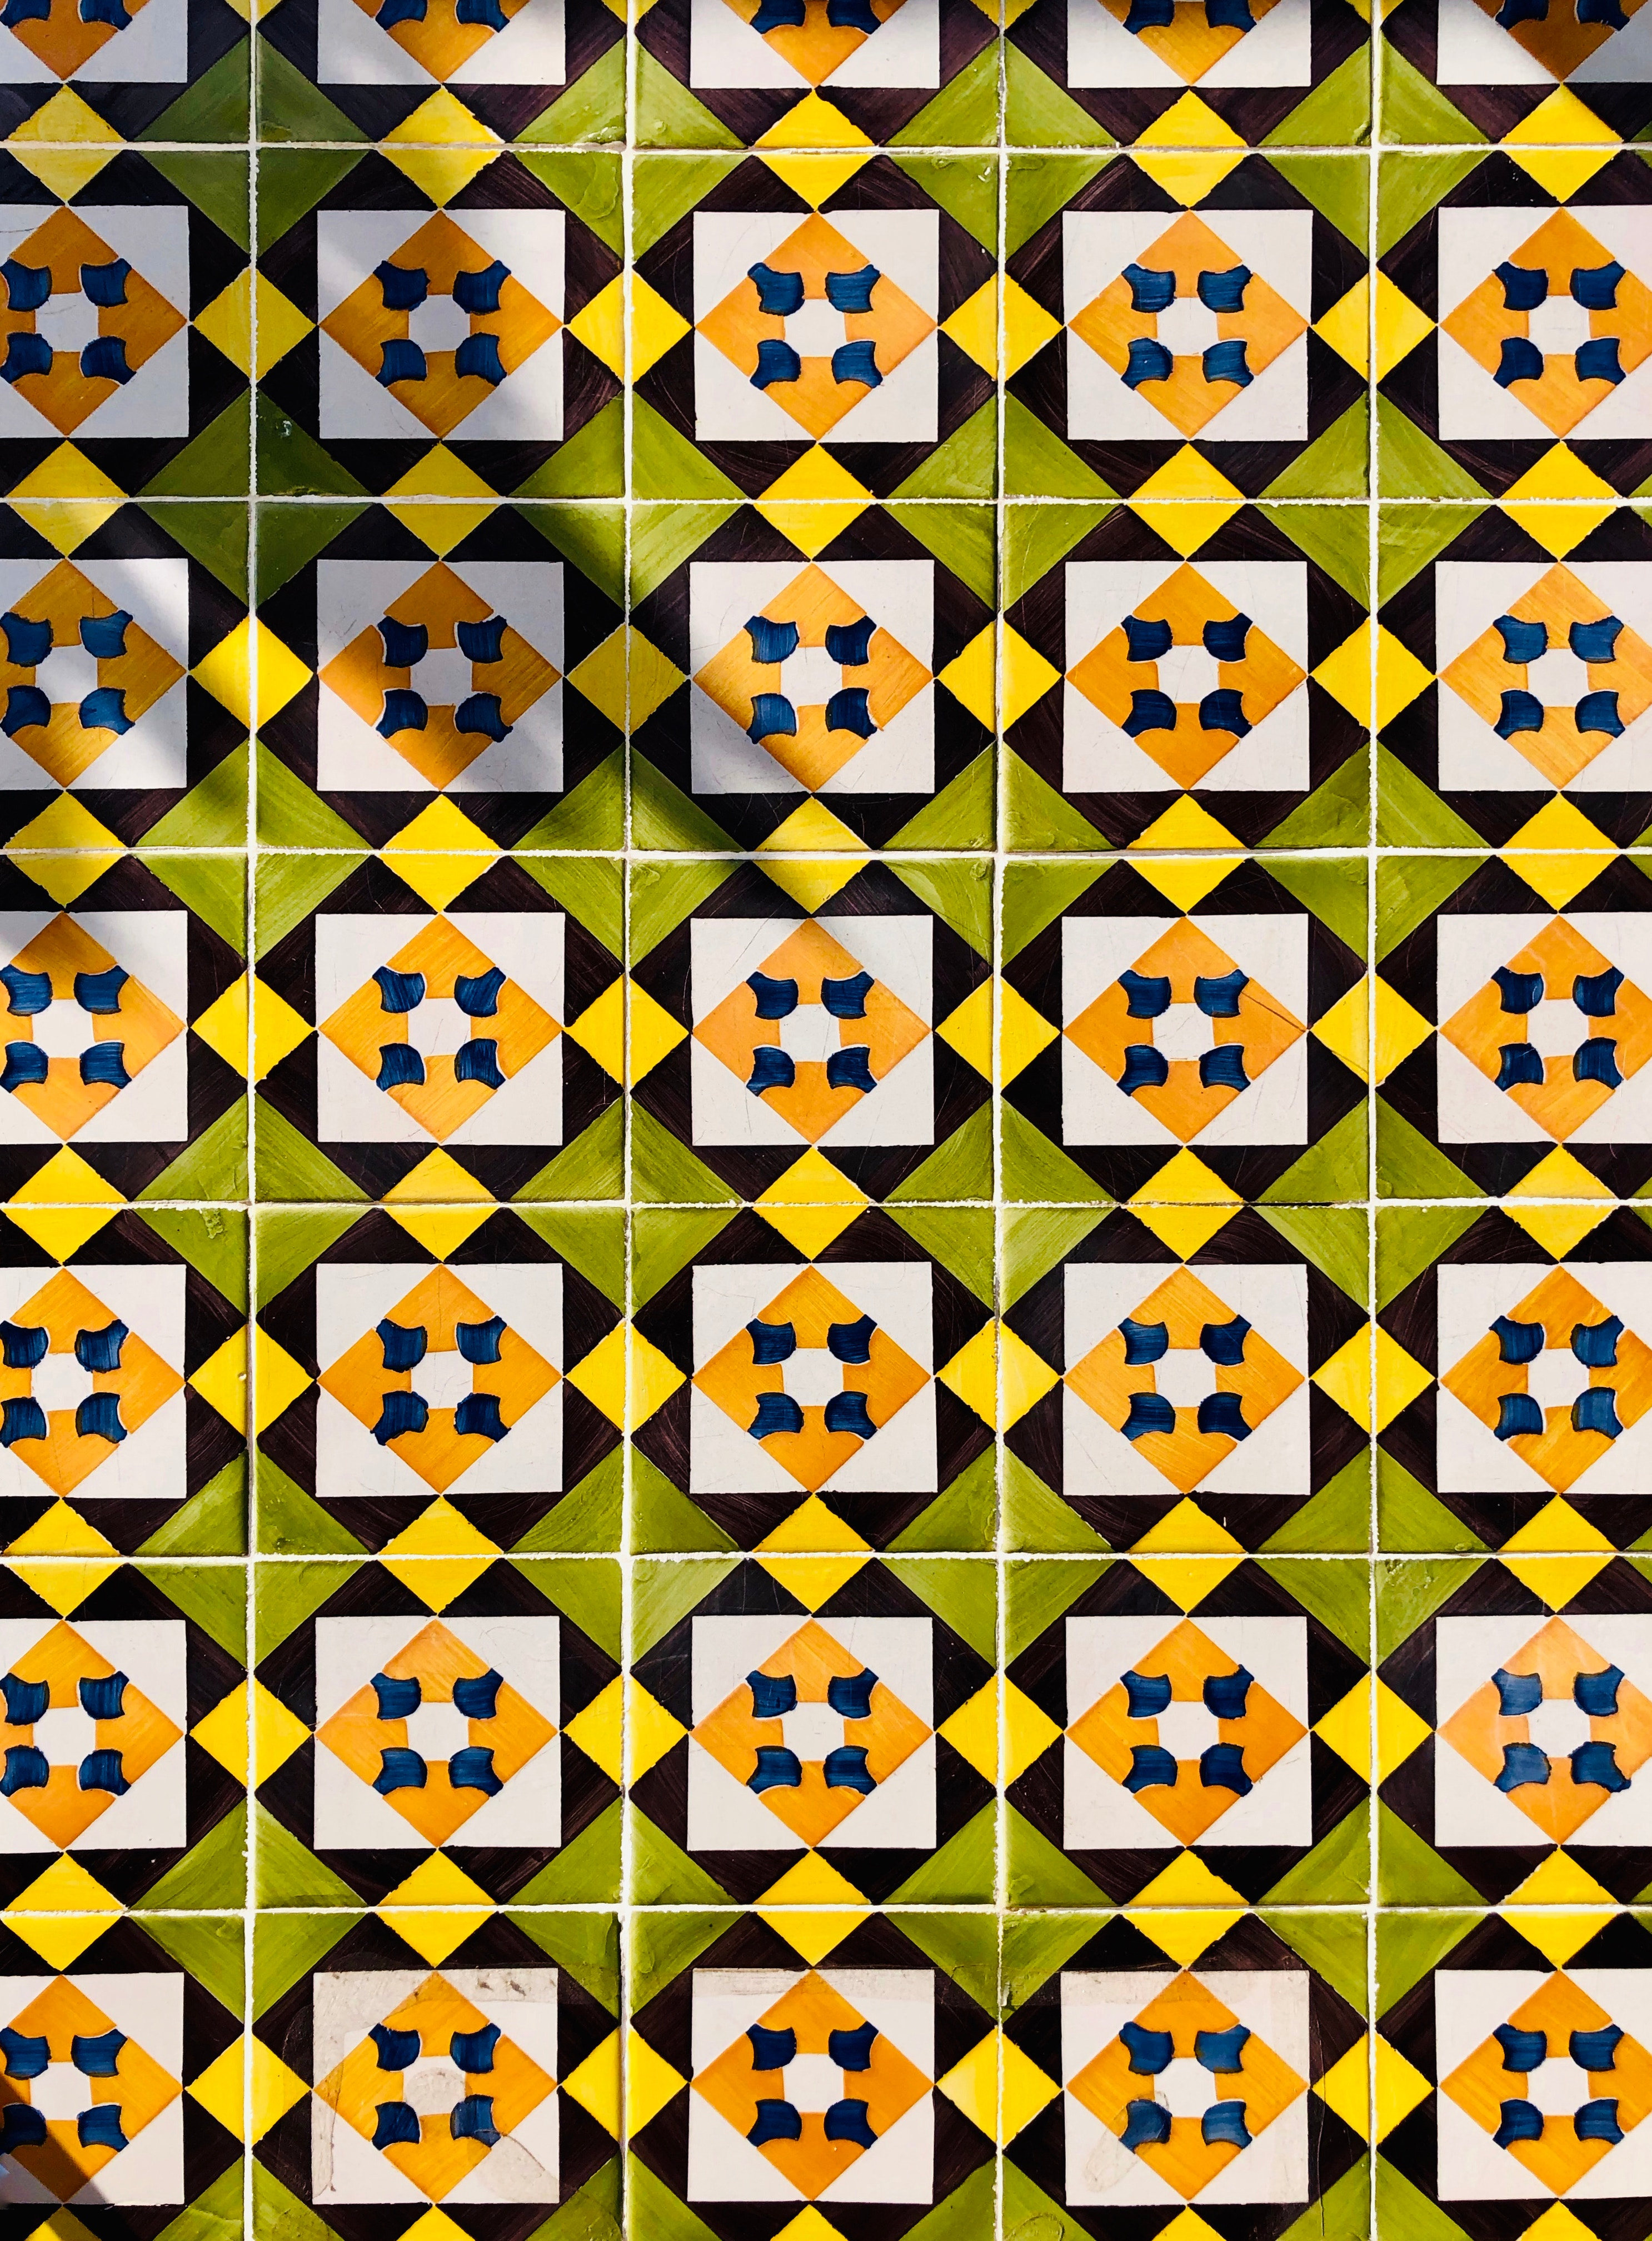 54876 download wallpaper Textures, Texture, Pattern, Geometric, Multicolored, Motley, Squares, Rhombuses, Diamonds, Triangles screensavers and pictures for free